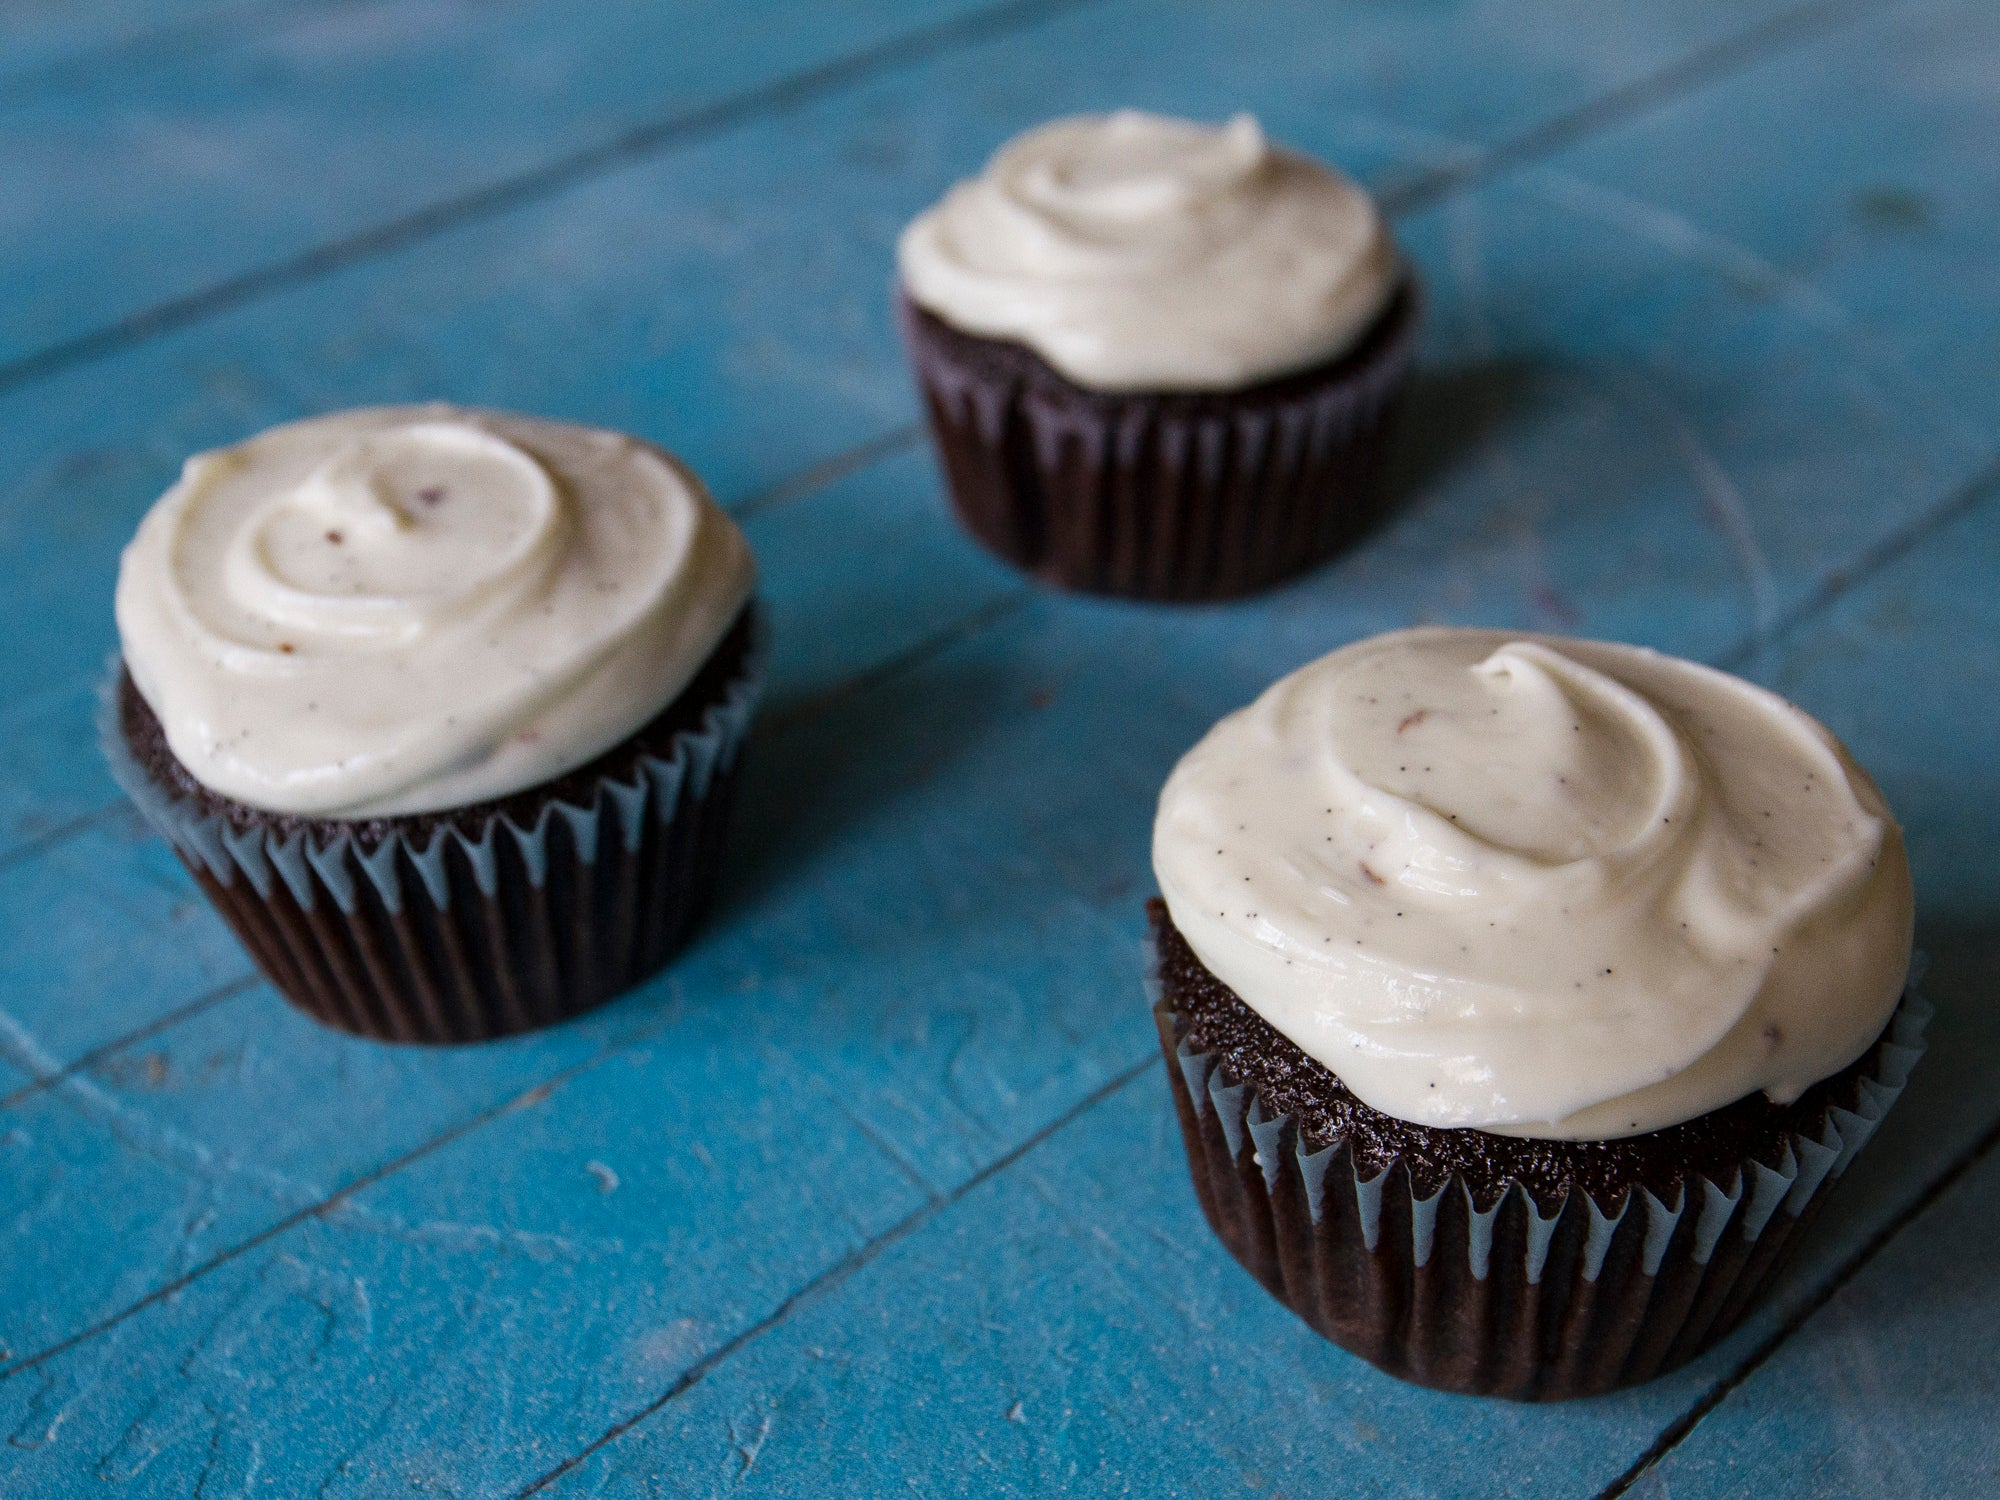 Chocolate Cupcakes with Goat Cheese Frosting